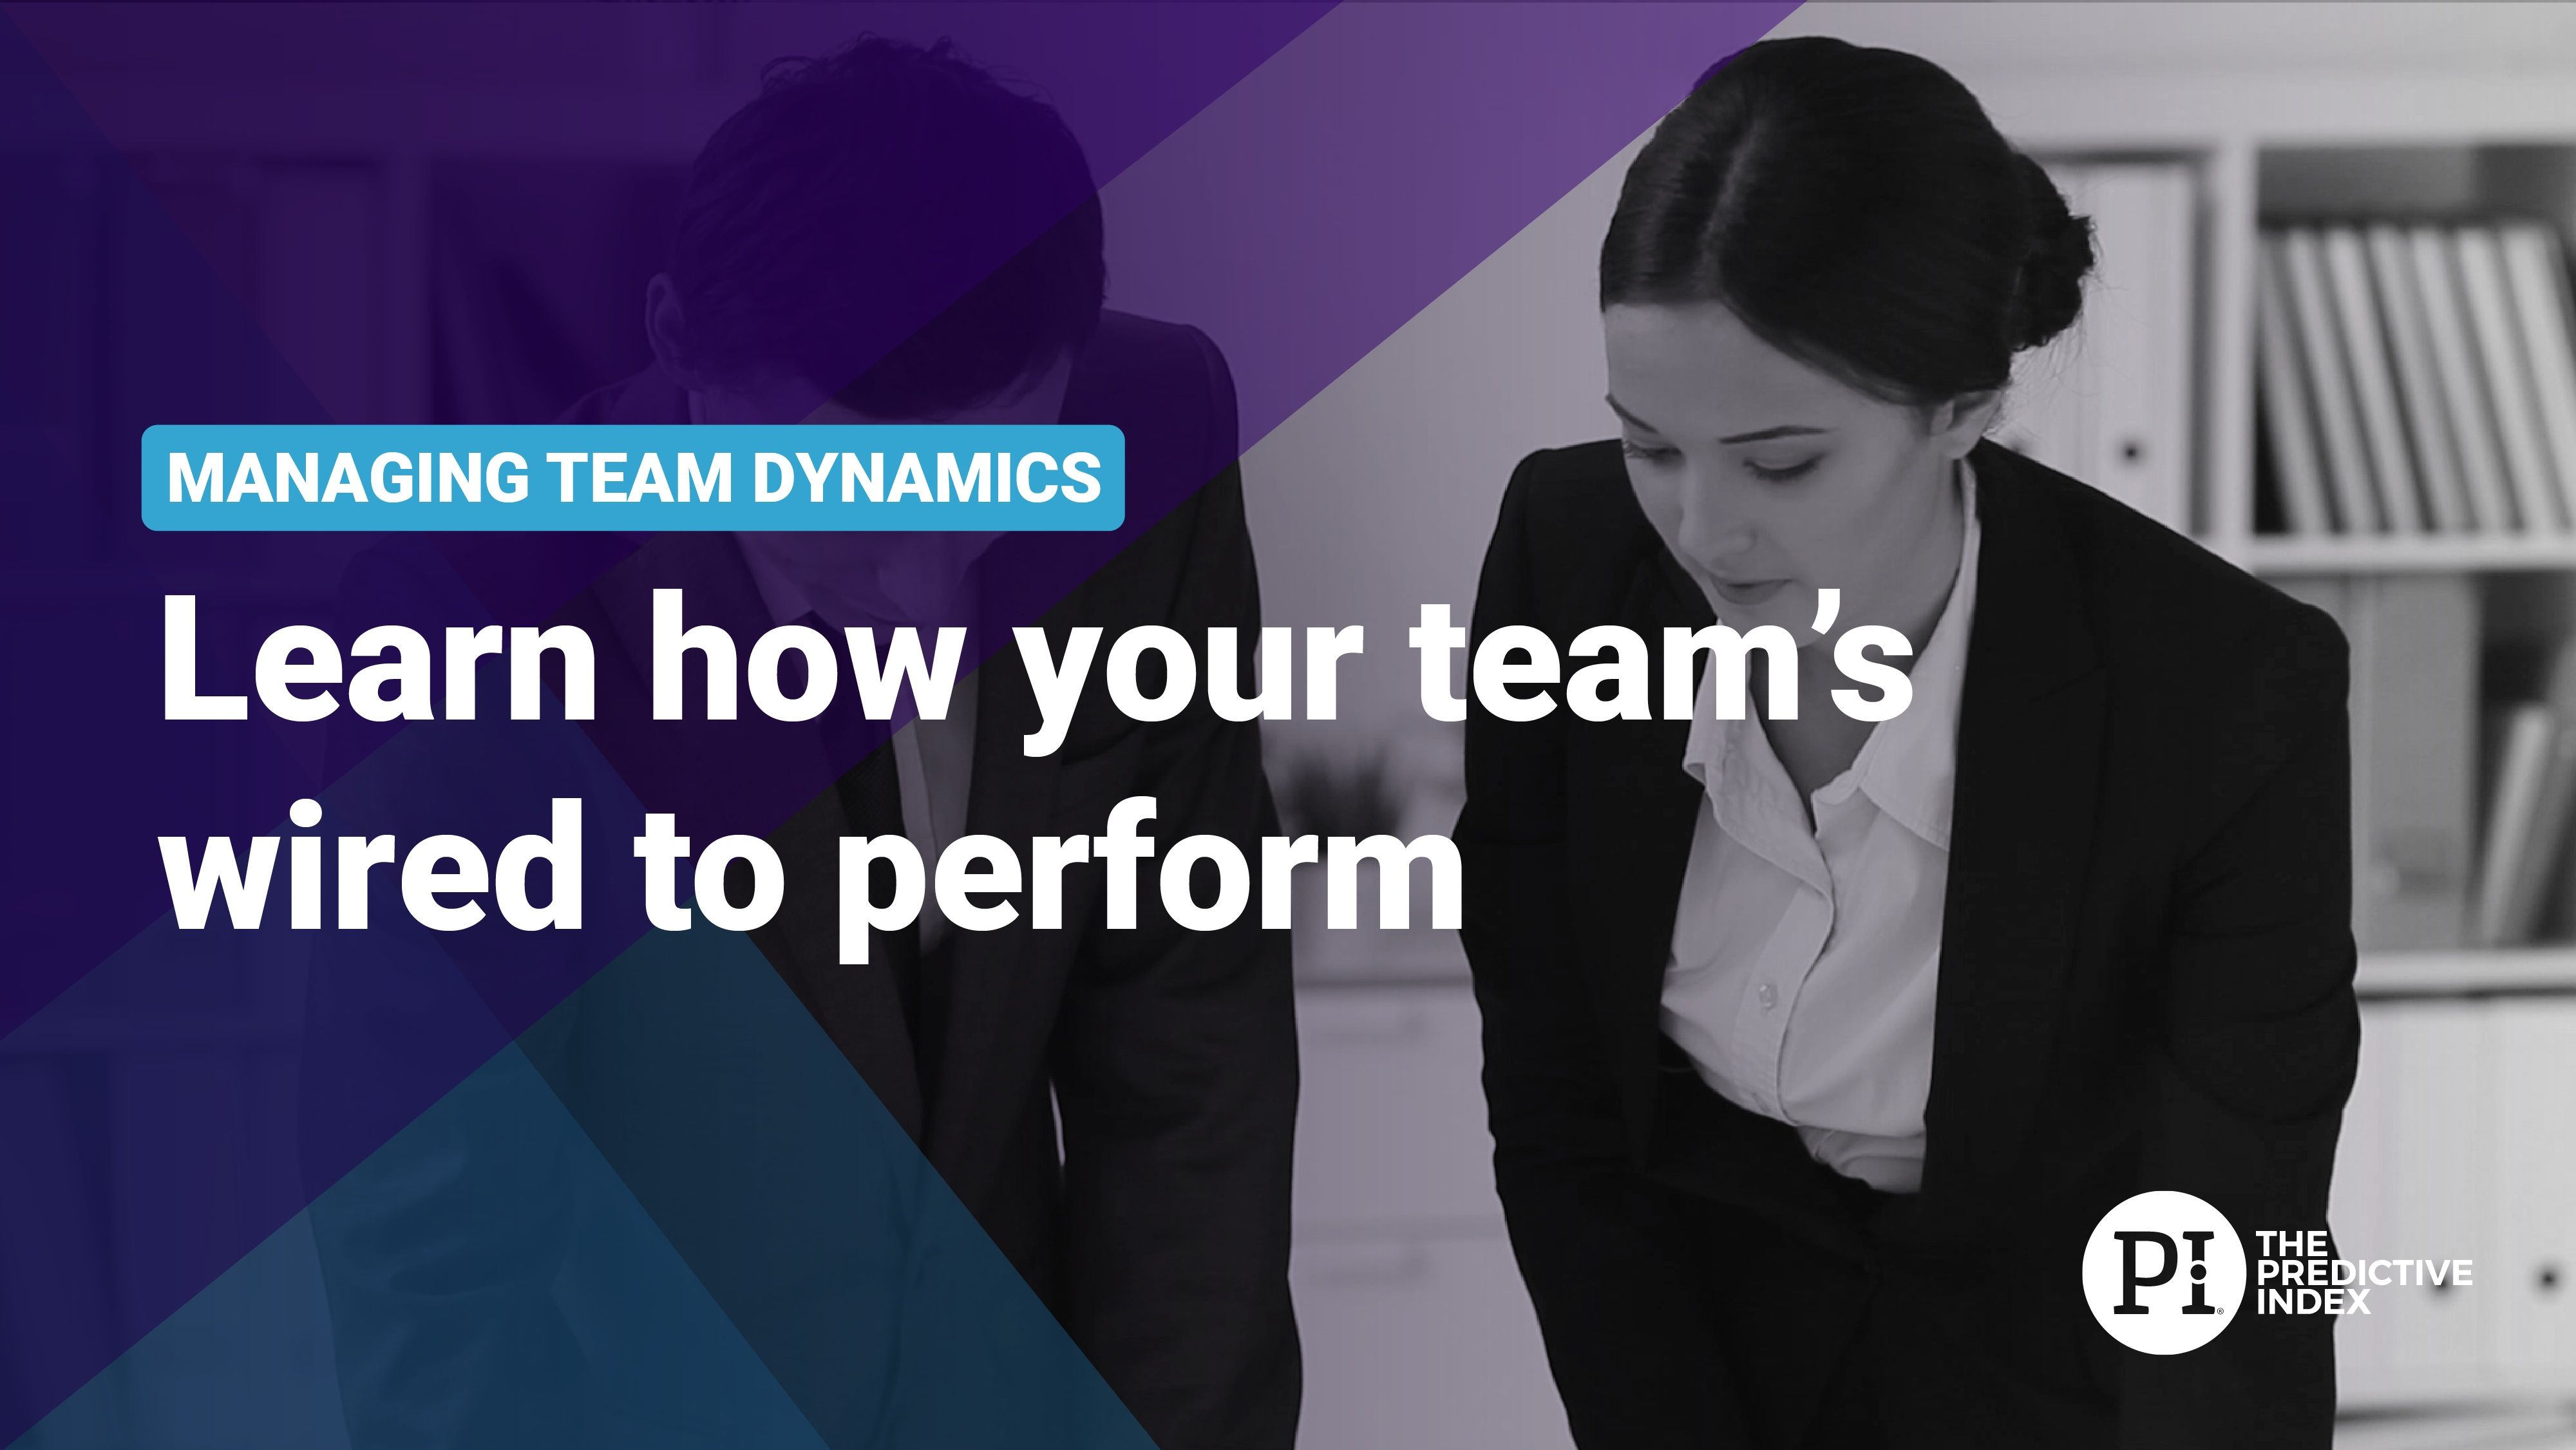 L2 -  Learn how your team's wired to perform [P]